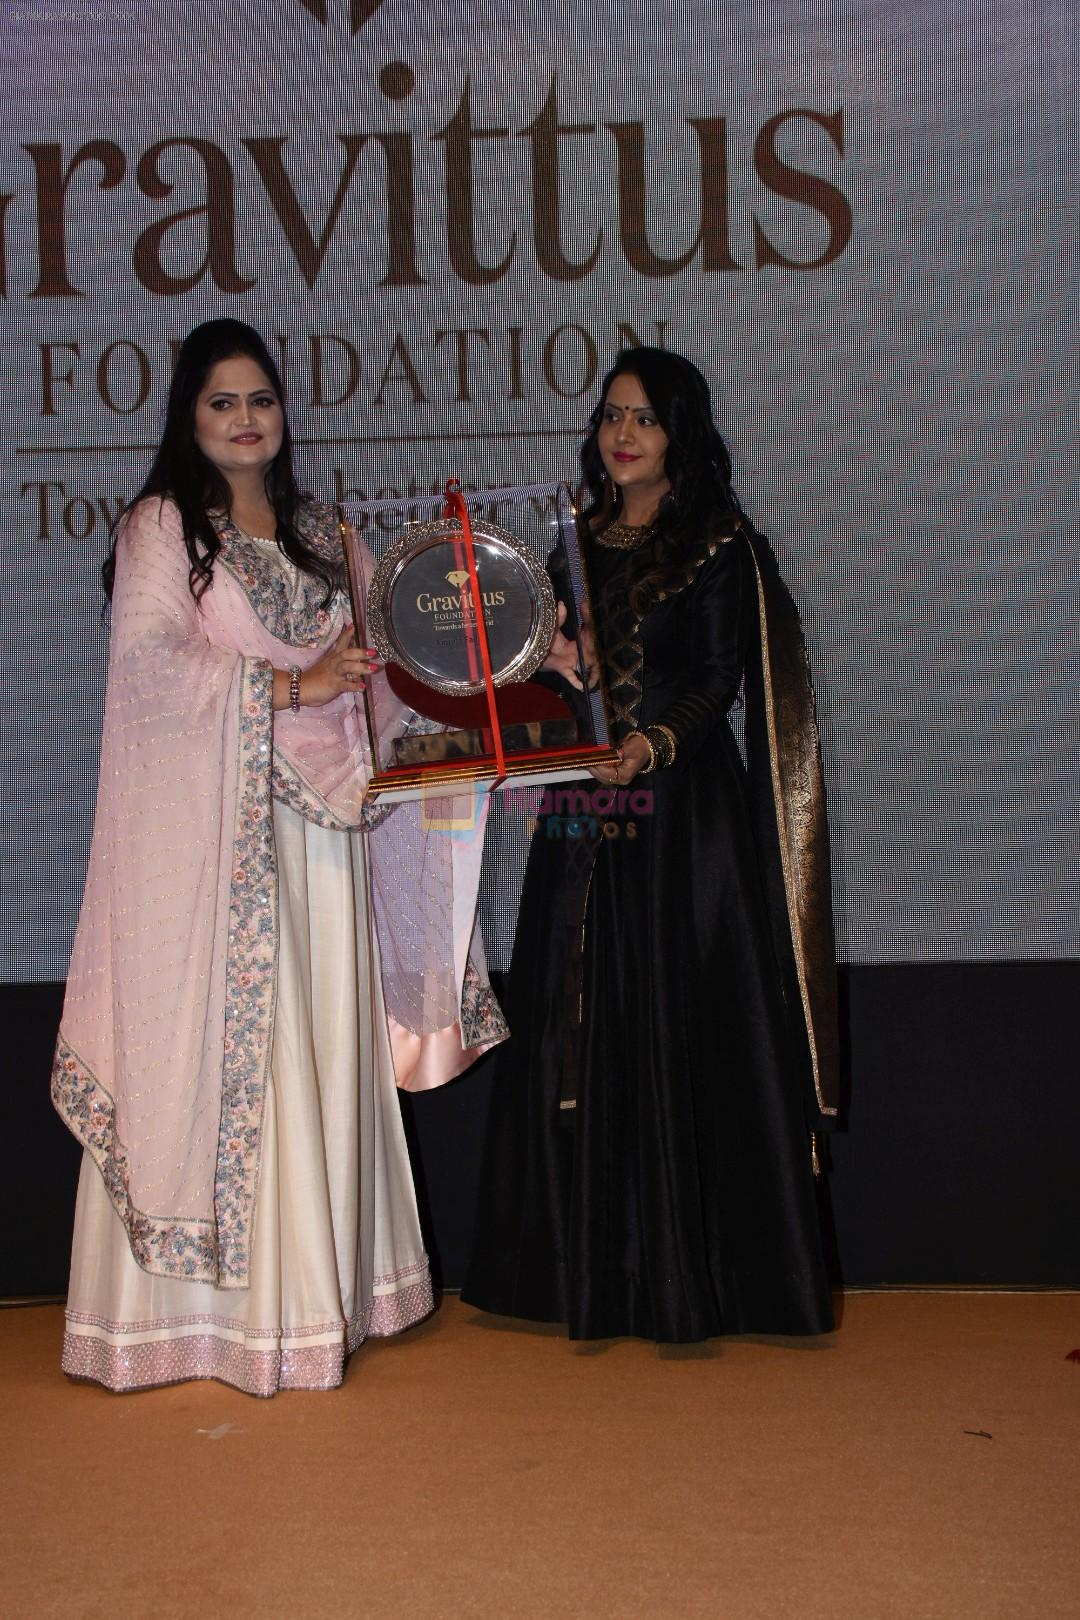 Amruta Fadnavis launch Usha Kakade's book Gravittus Ratna in pune on 3rd July 2019